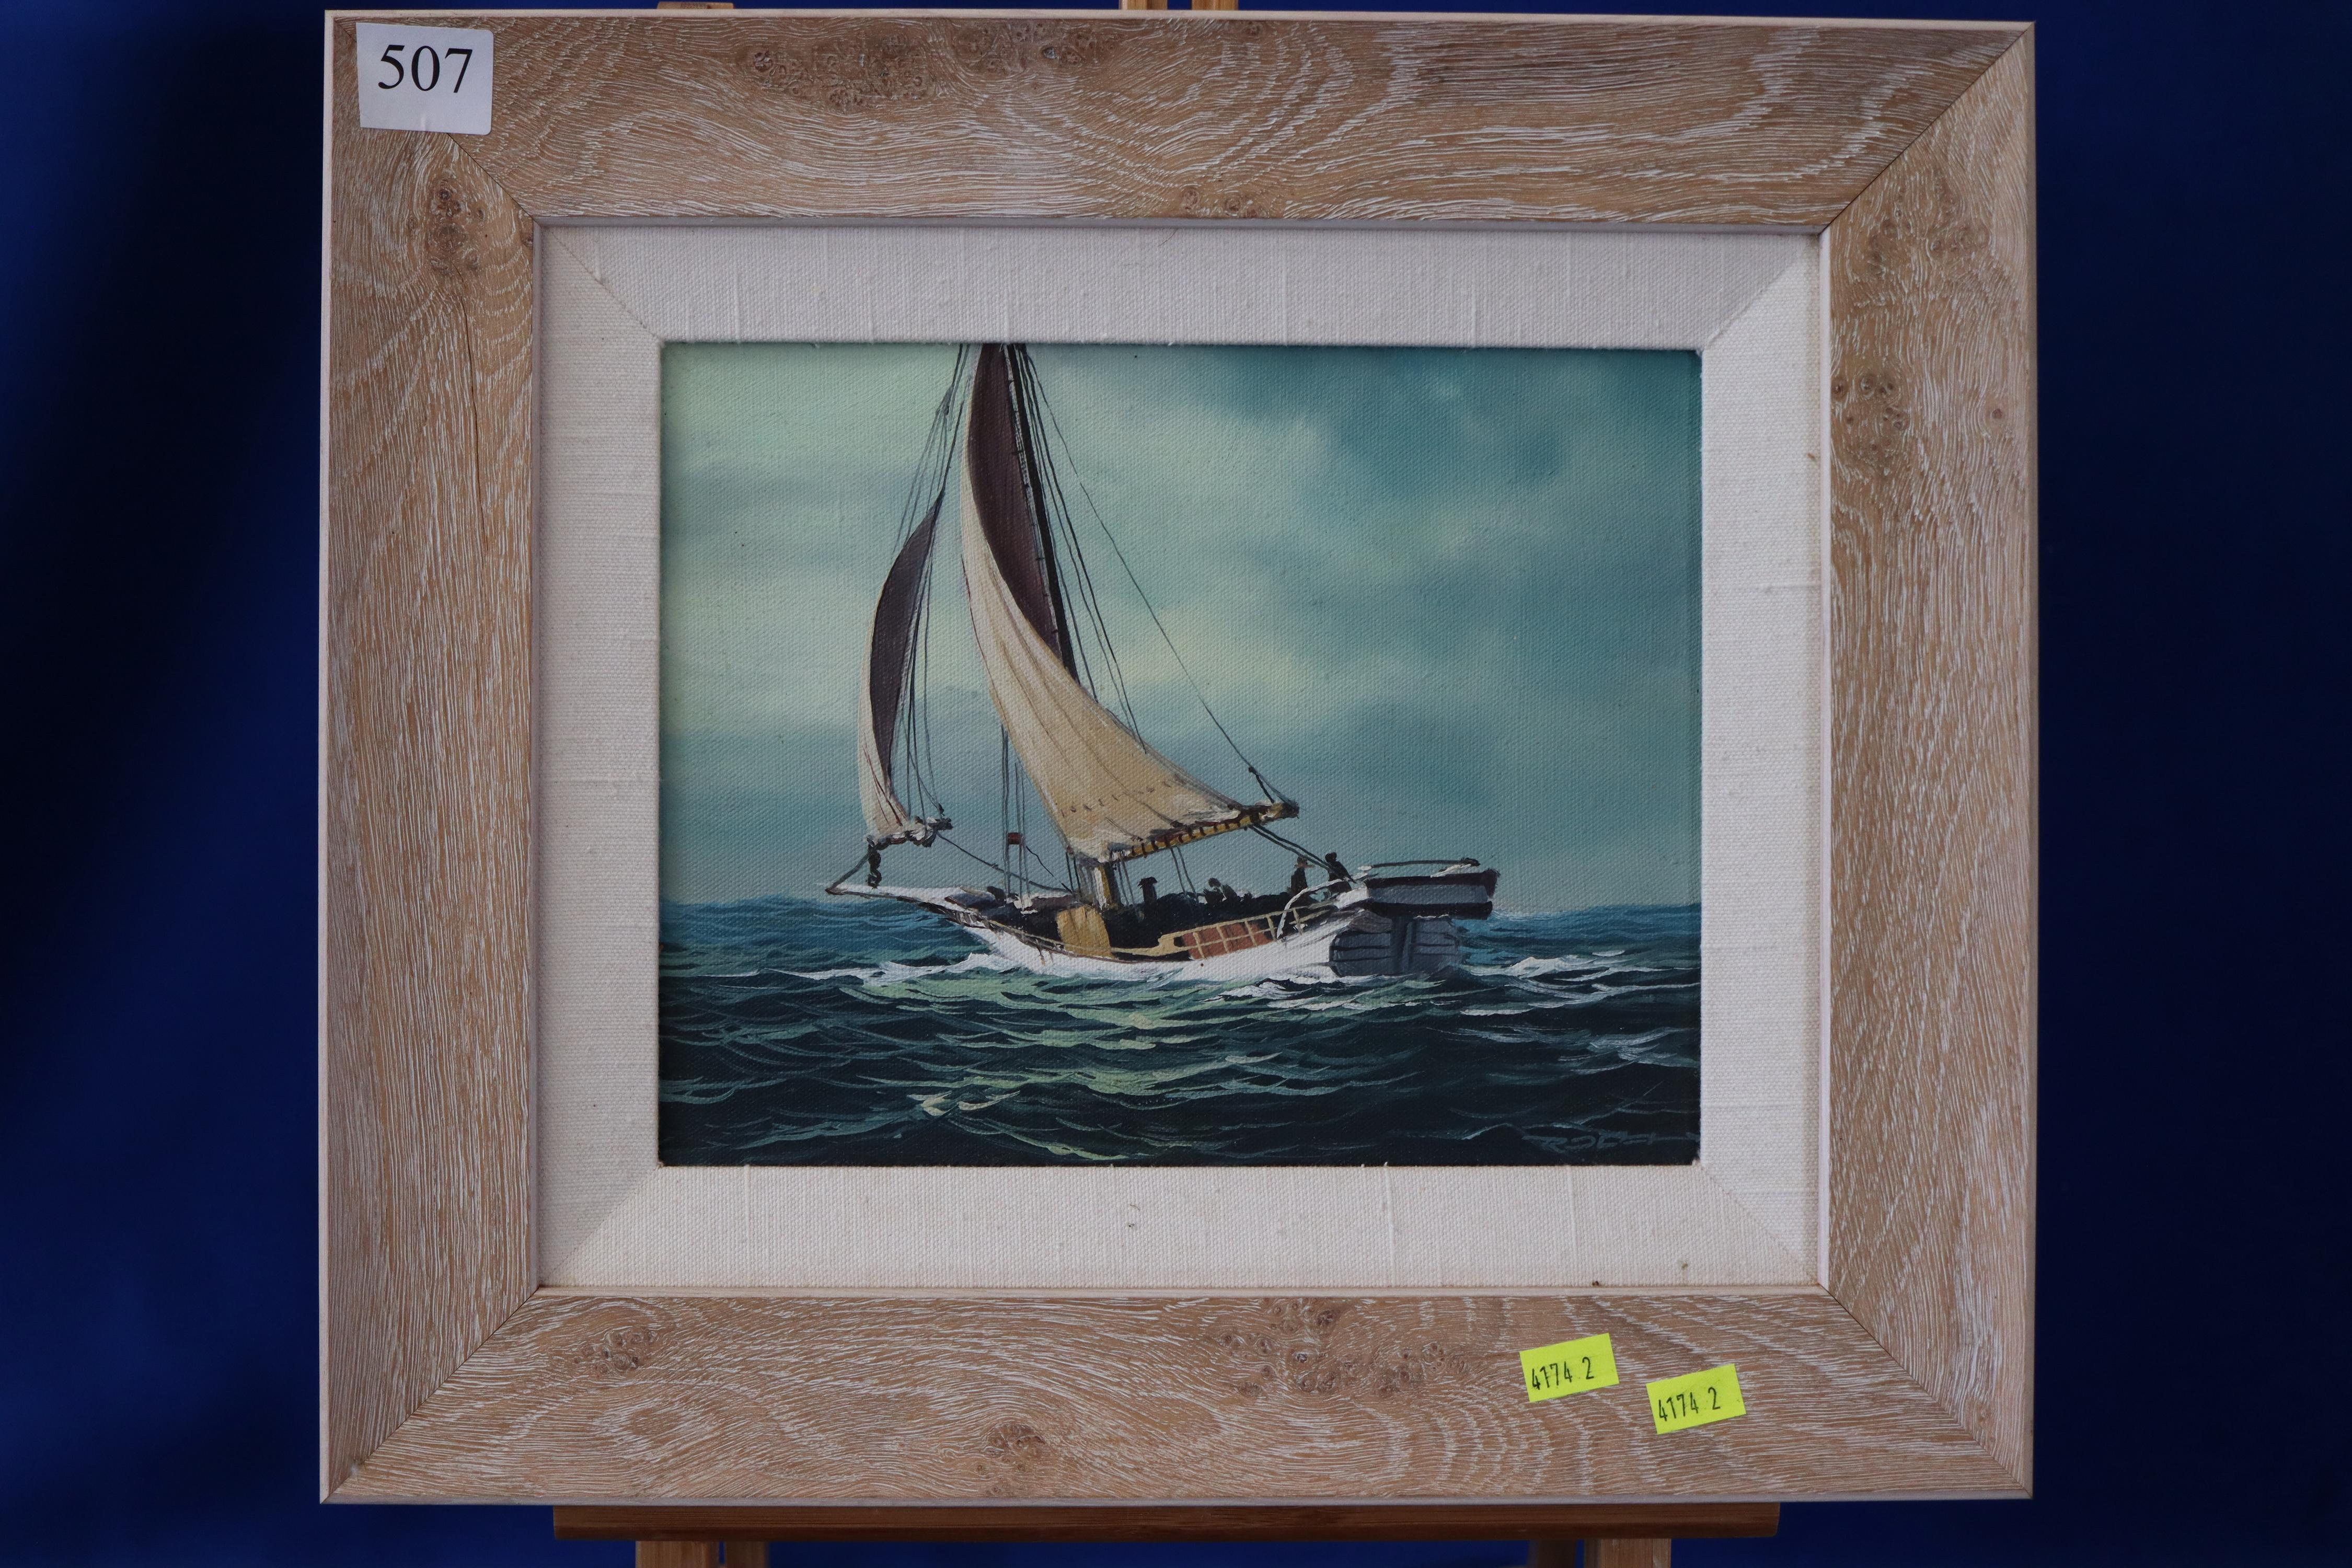 SMALL FRAMED OIL ON CANVAS OF A SAILBOAT BY ARTIST ROCS